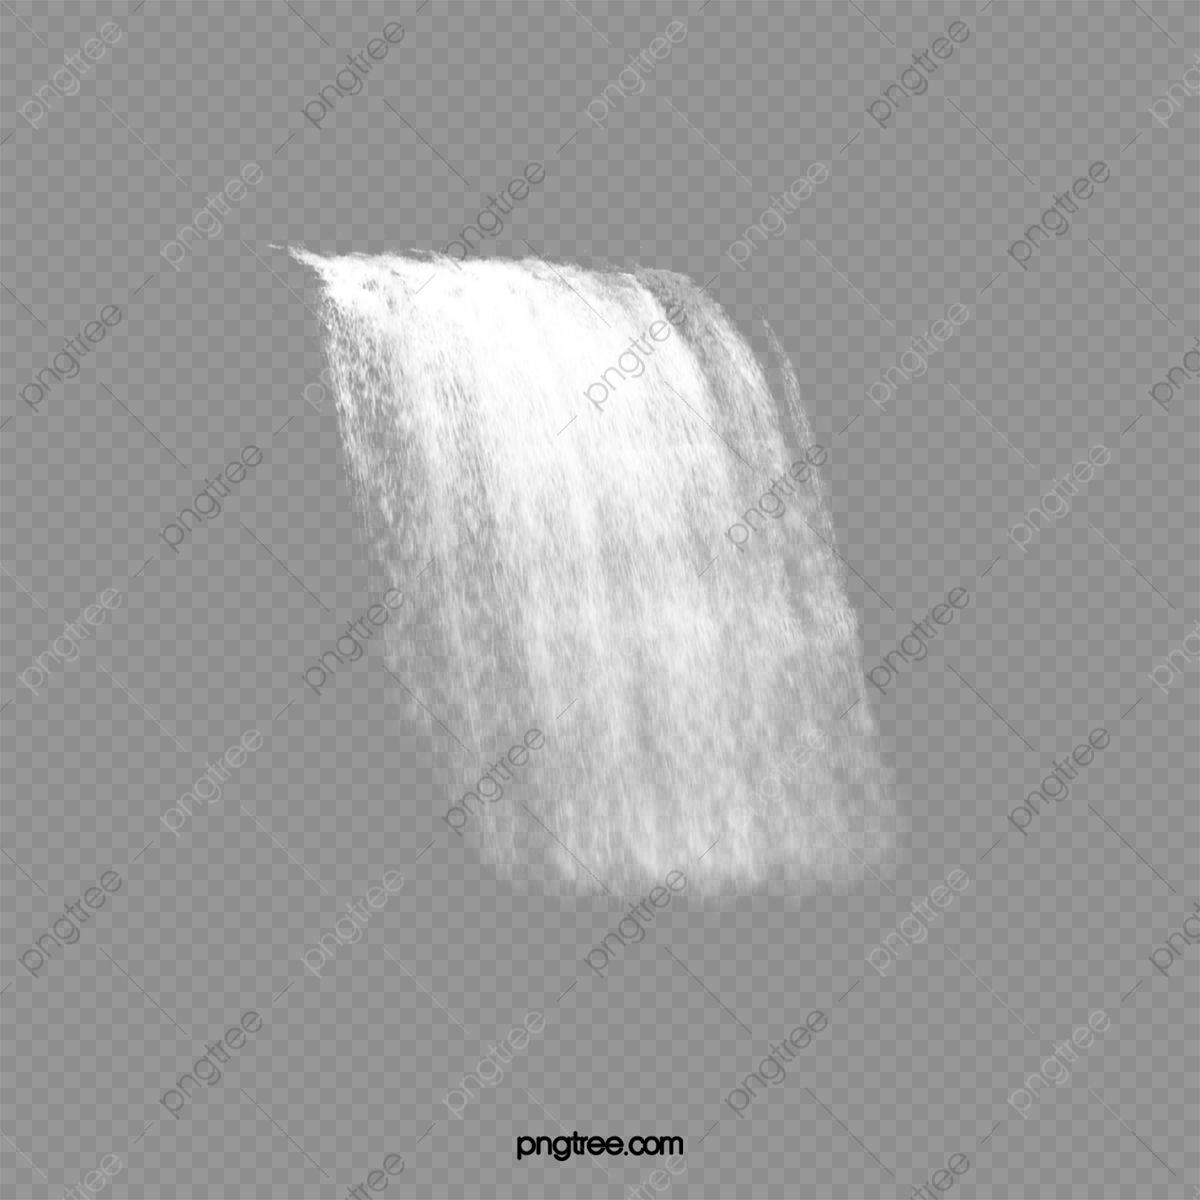 Waterfall Waterfall Clipart Spray Flow Png Transparent Clipart Image And Psd File For Free Download Clip Art Birthday Background Images Waterfall